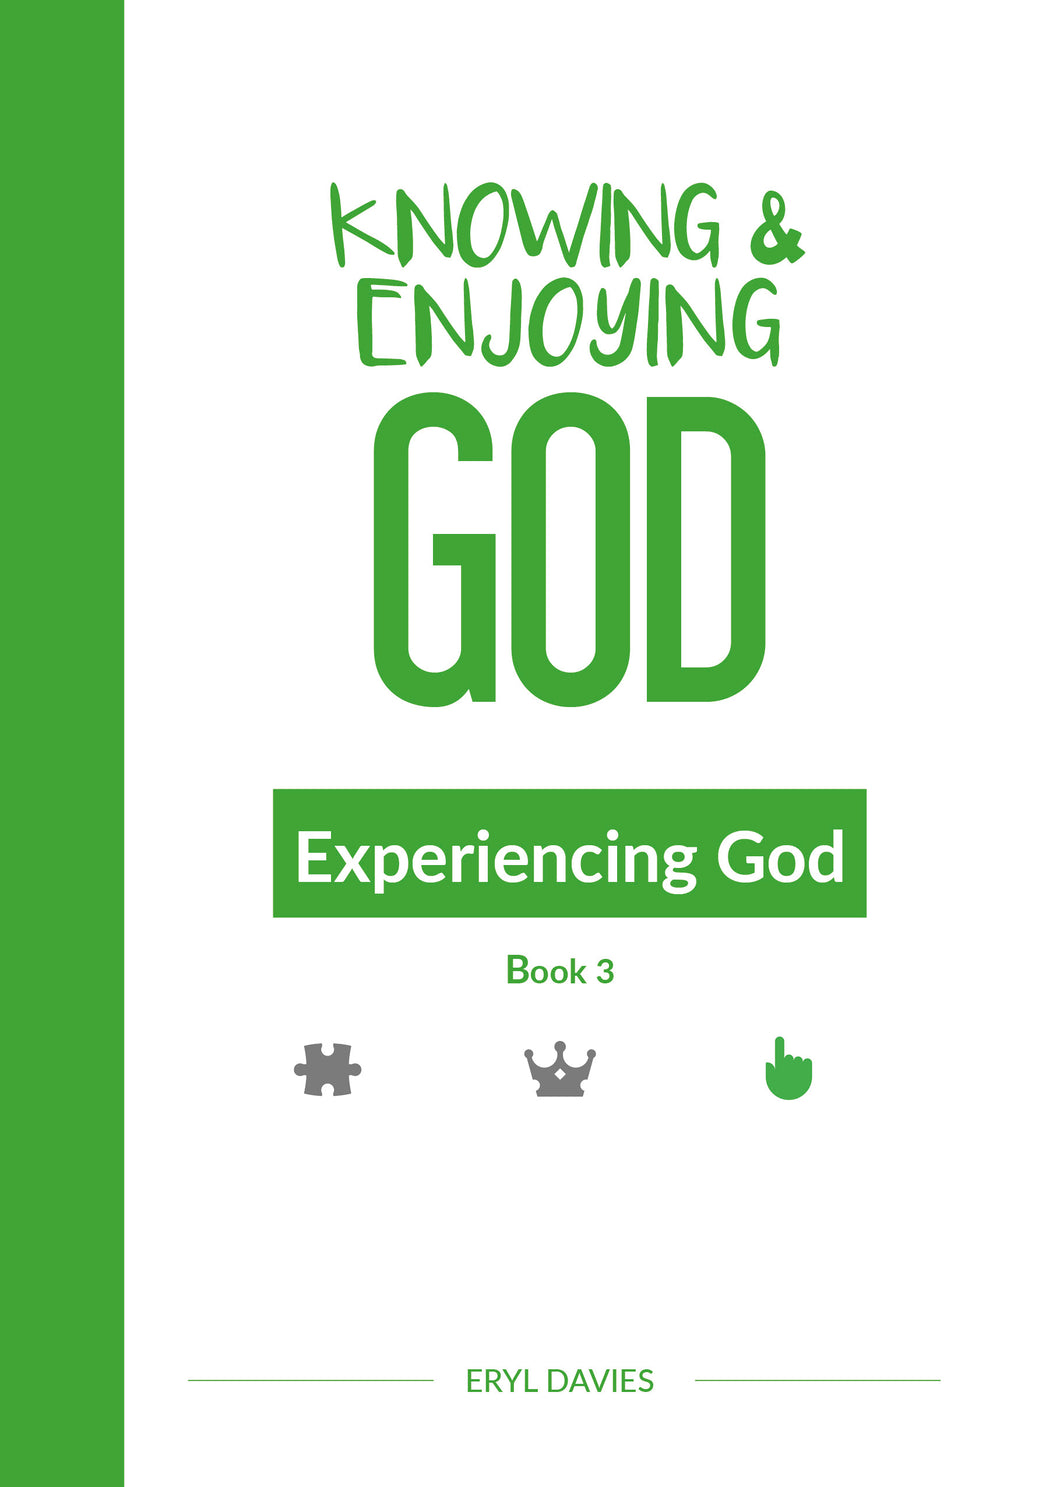 Experiencing God (Book 3: Knowing and Enjoying God)